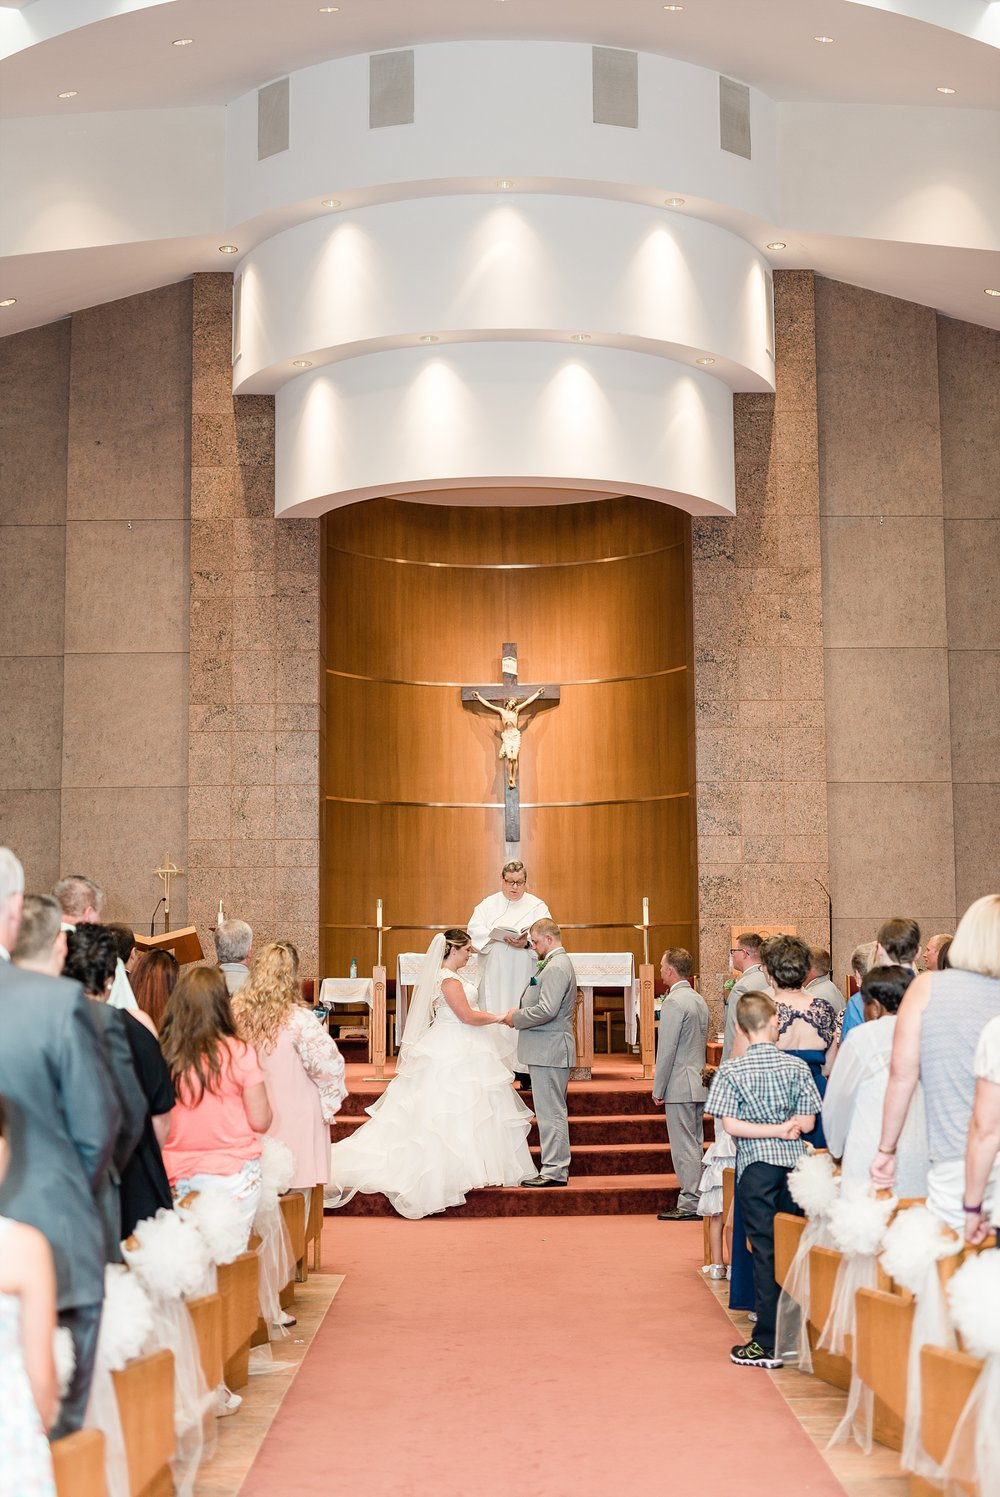 Baurichter Wedding at Stoney Creek Inn Columbia Missouri by Kelsi Kliethermes Photography_0012.jpg